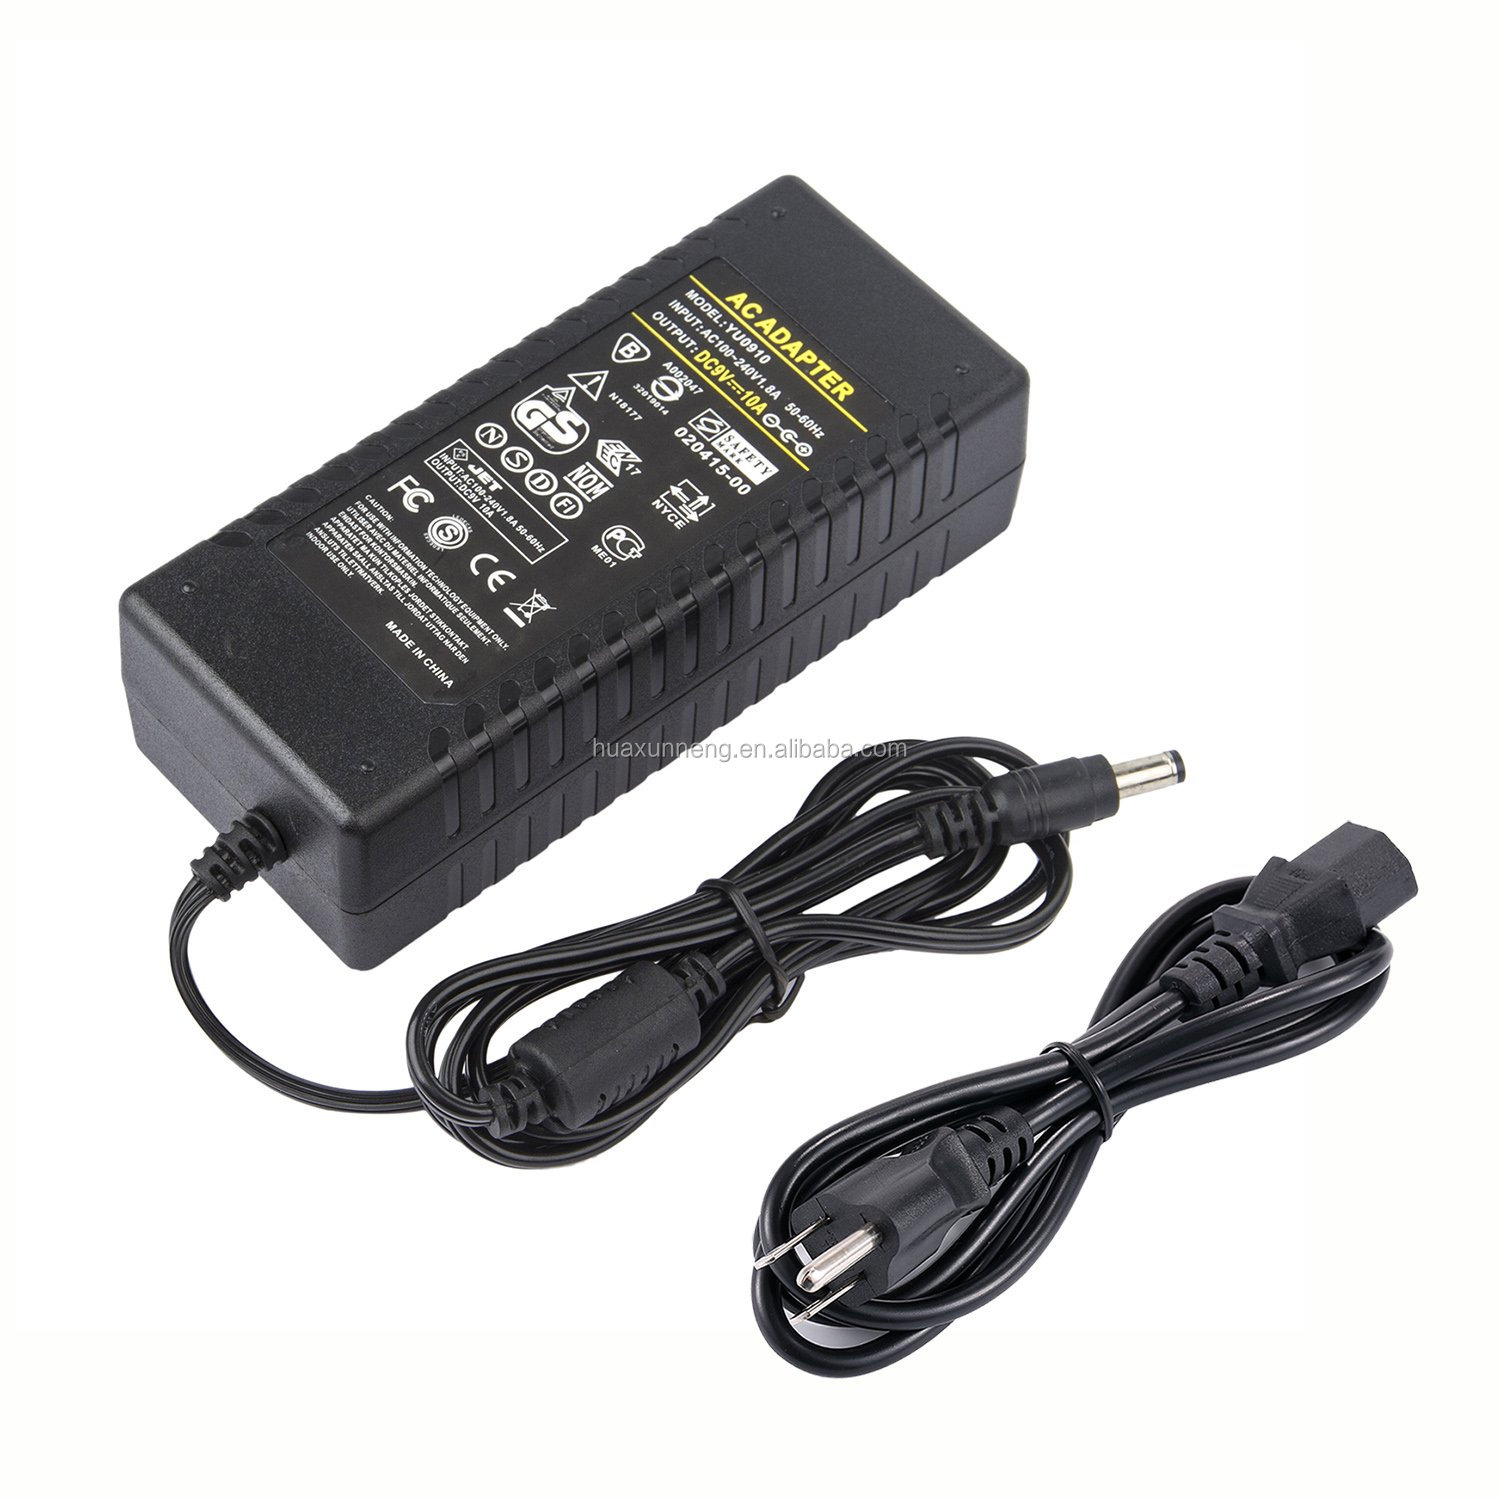 Adaptor AC/DC 9 V 10A 90 W Desktop Power Adapter 9 V 10A 90 W Power Supply